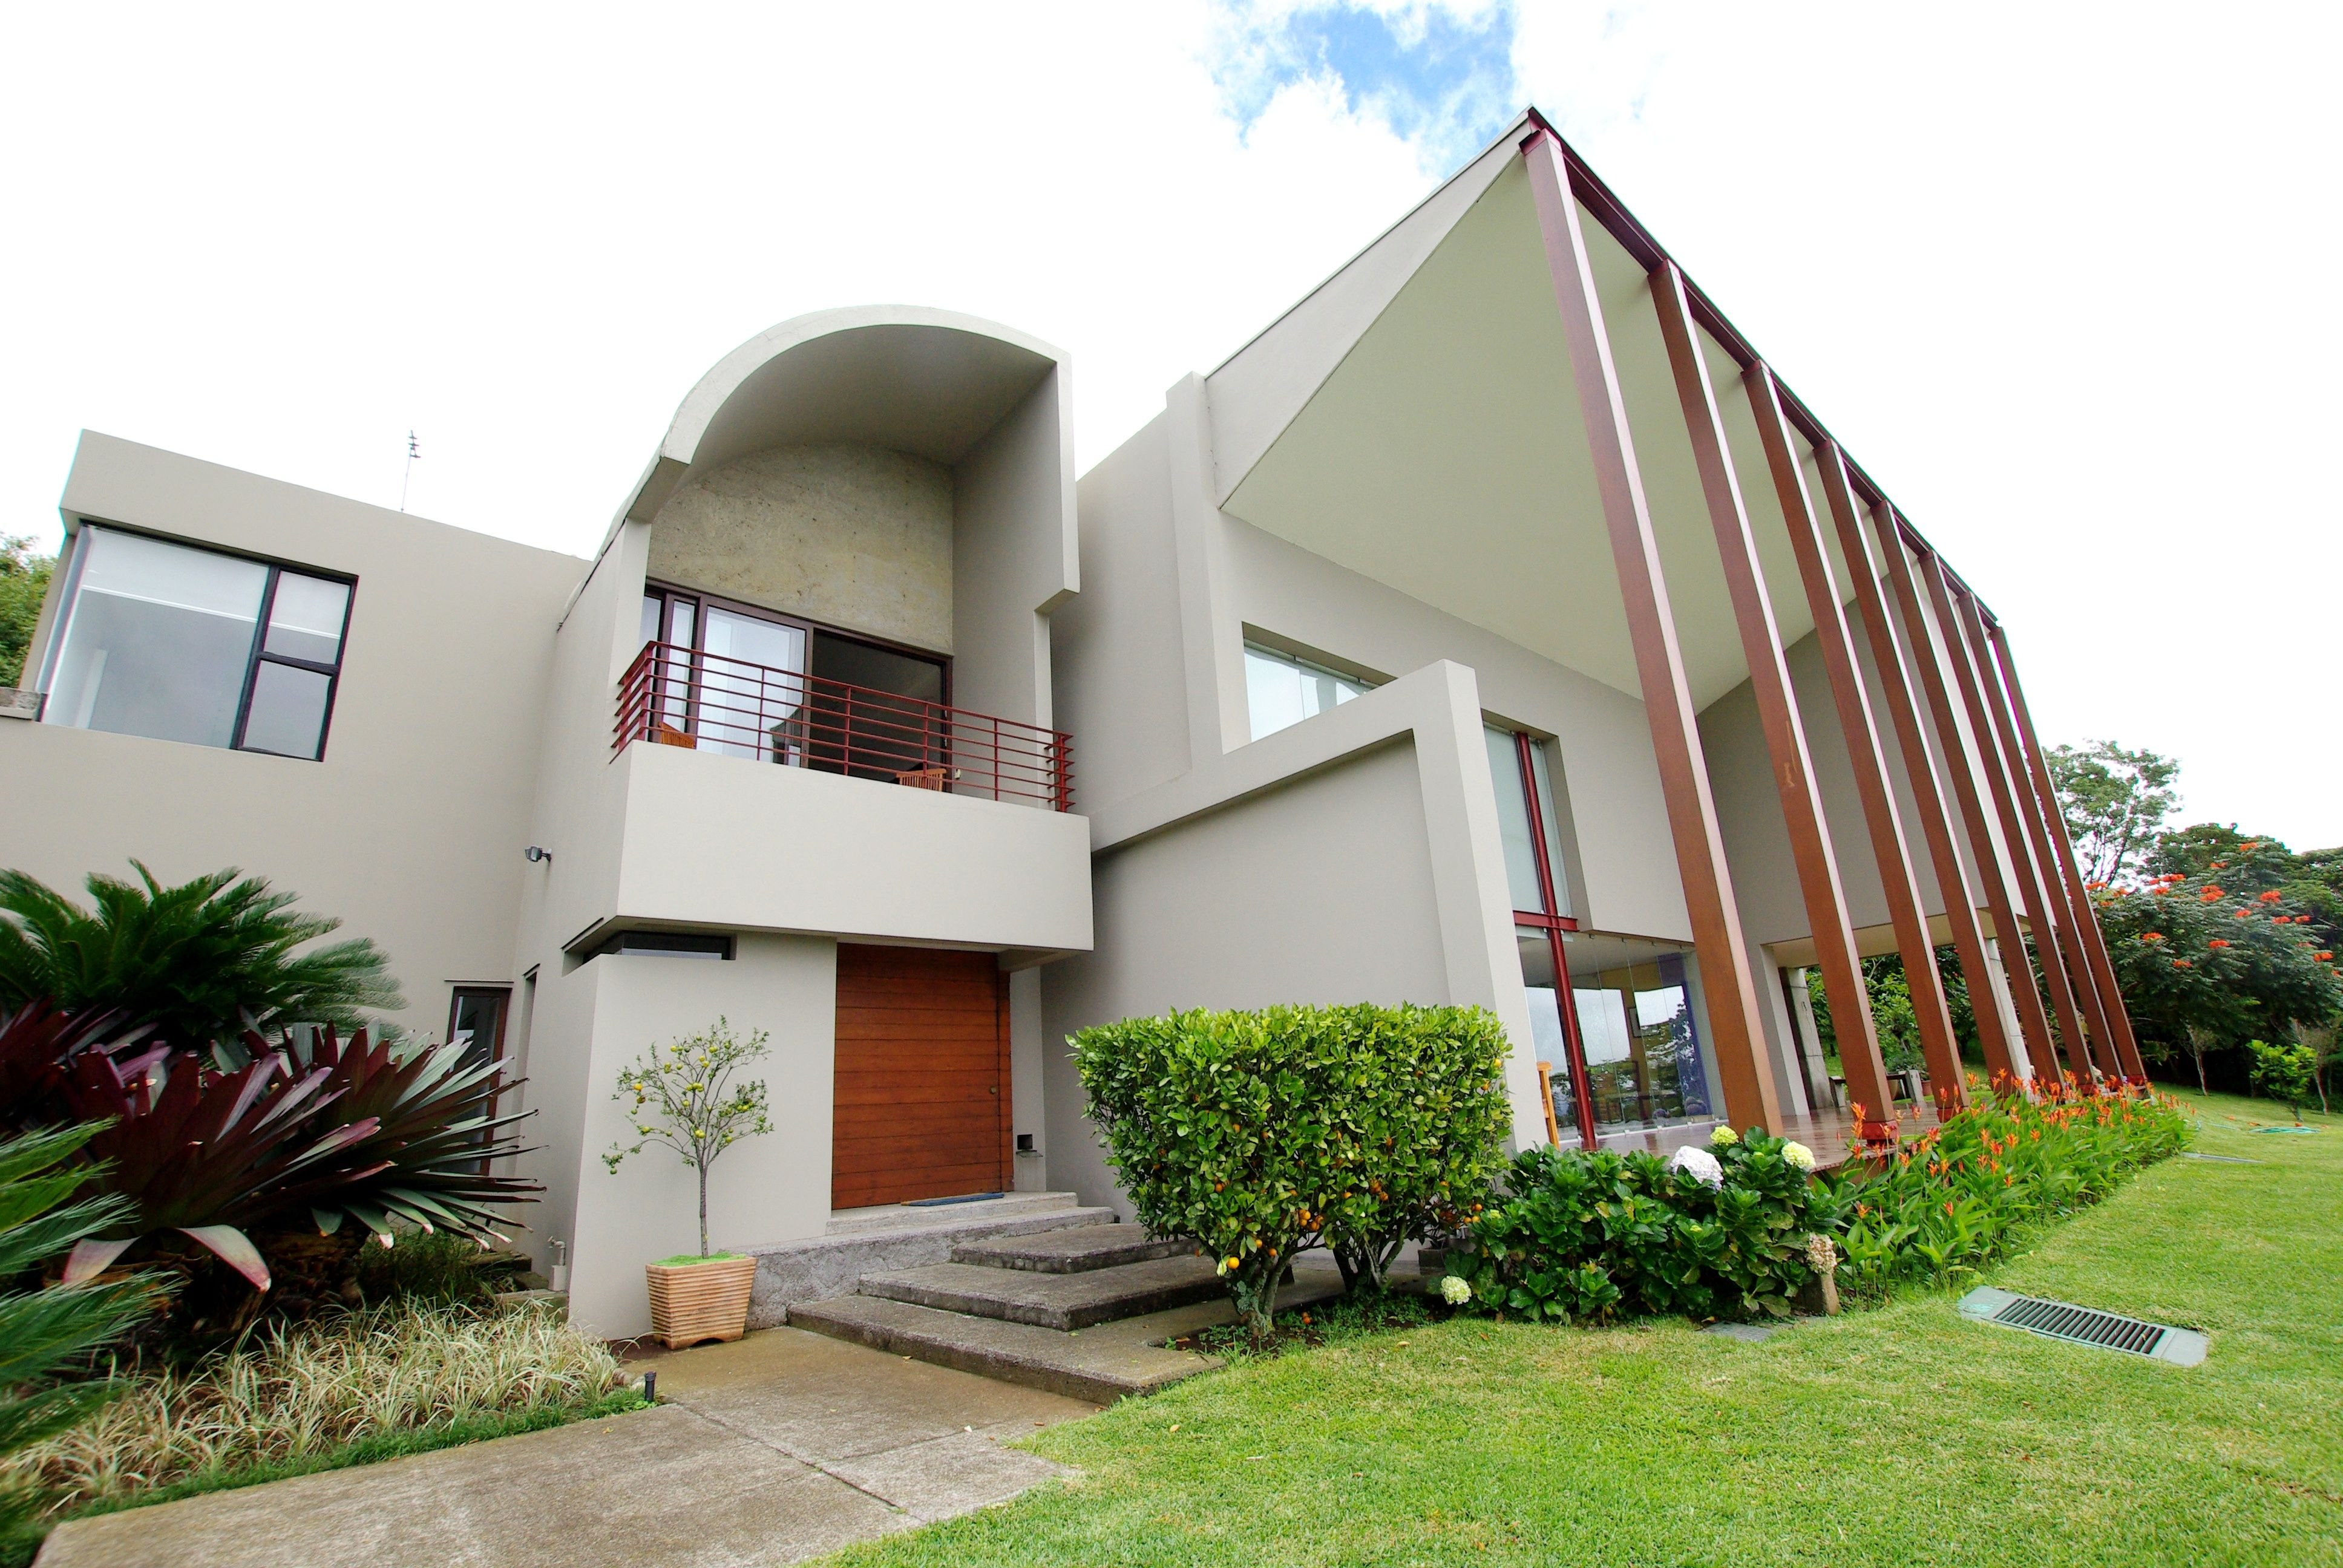 AWARD WINNING CONTEMPORARY ESCAZU HOUSE WITH AMAZING VIEWS: This unique property is a real dream for does looking for space, freedom and privacy.   http://costaricamilliondollarhomes.com/Casa-Award-Winning-Contemporary/index.html